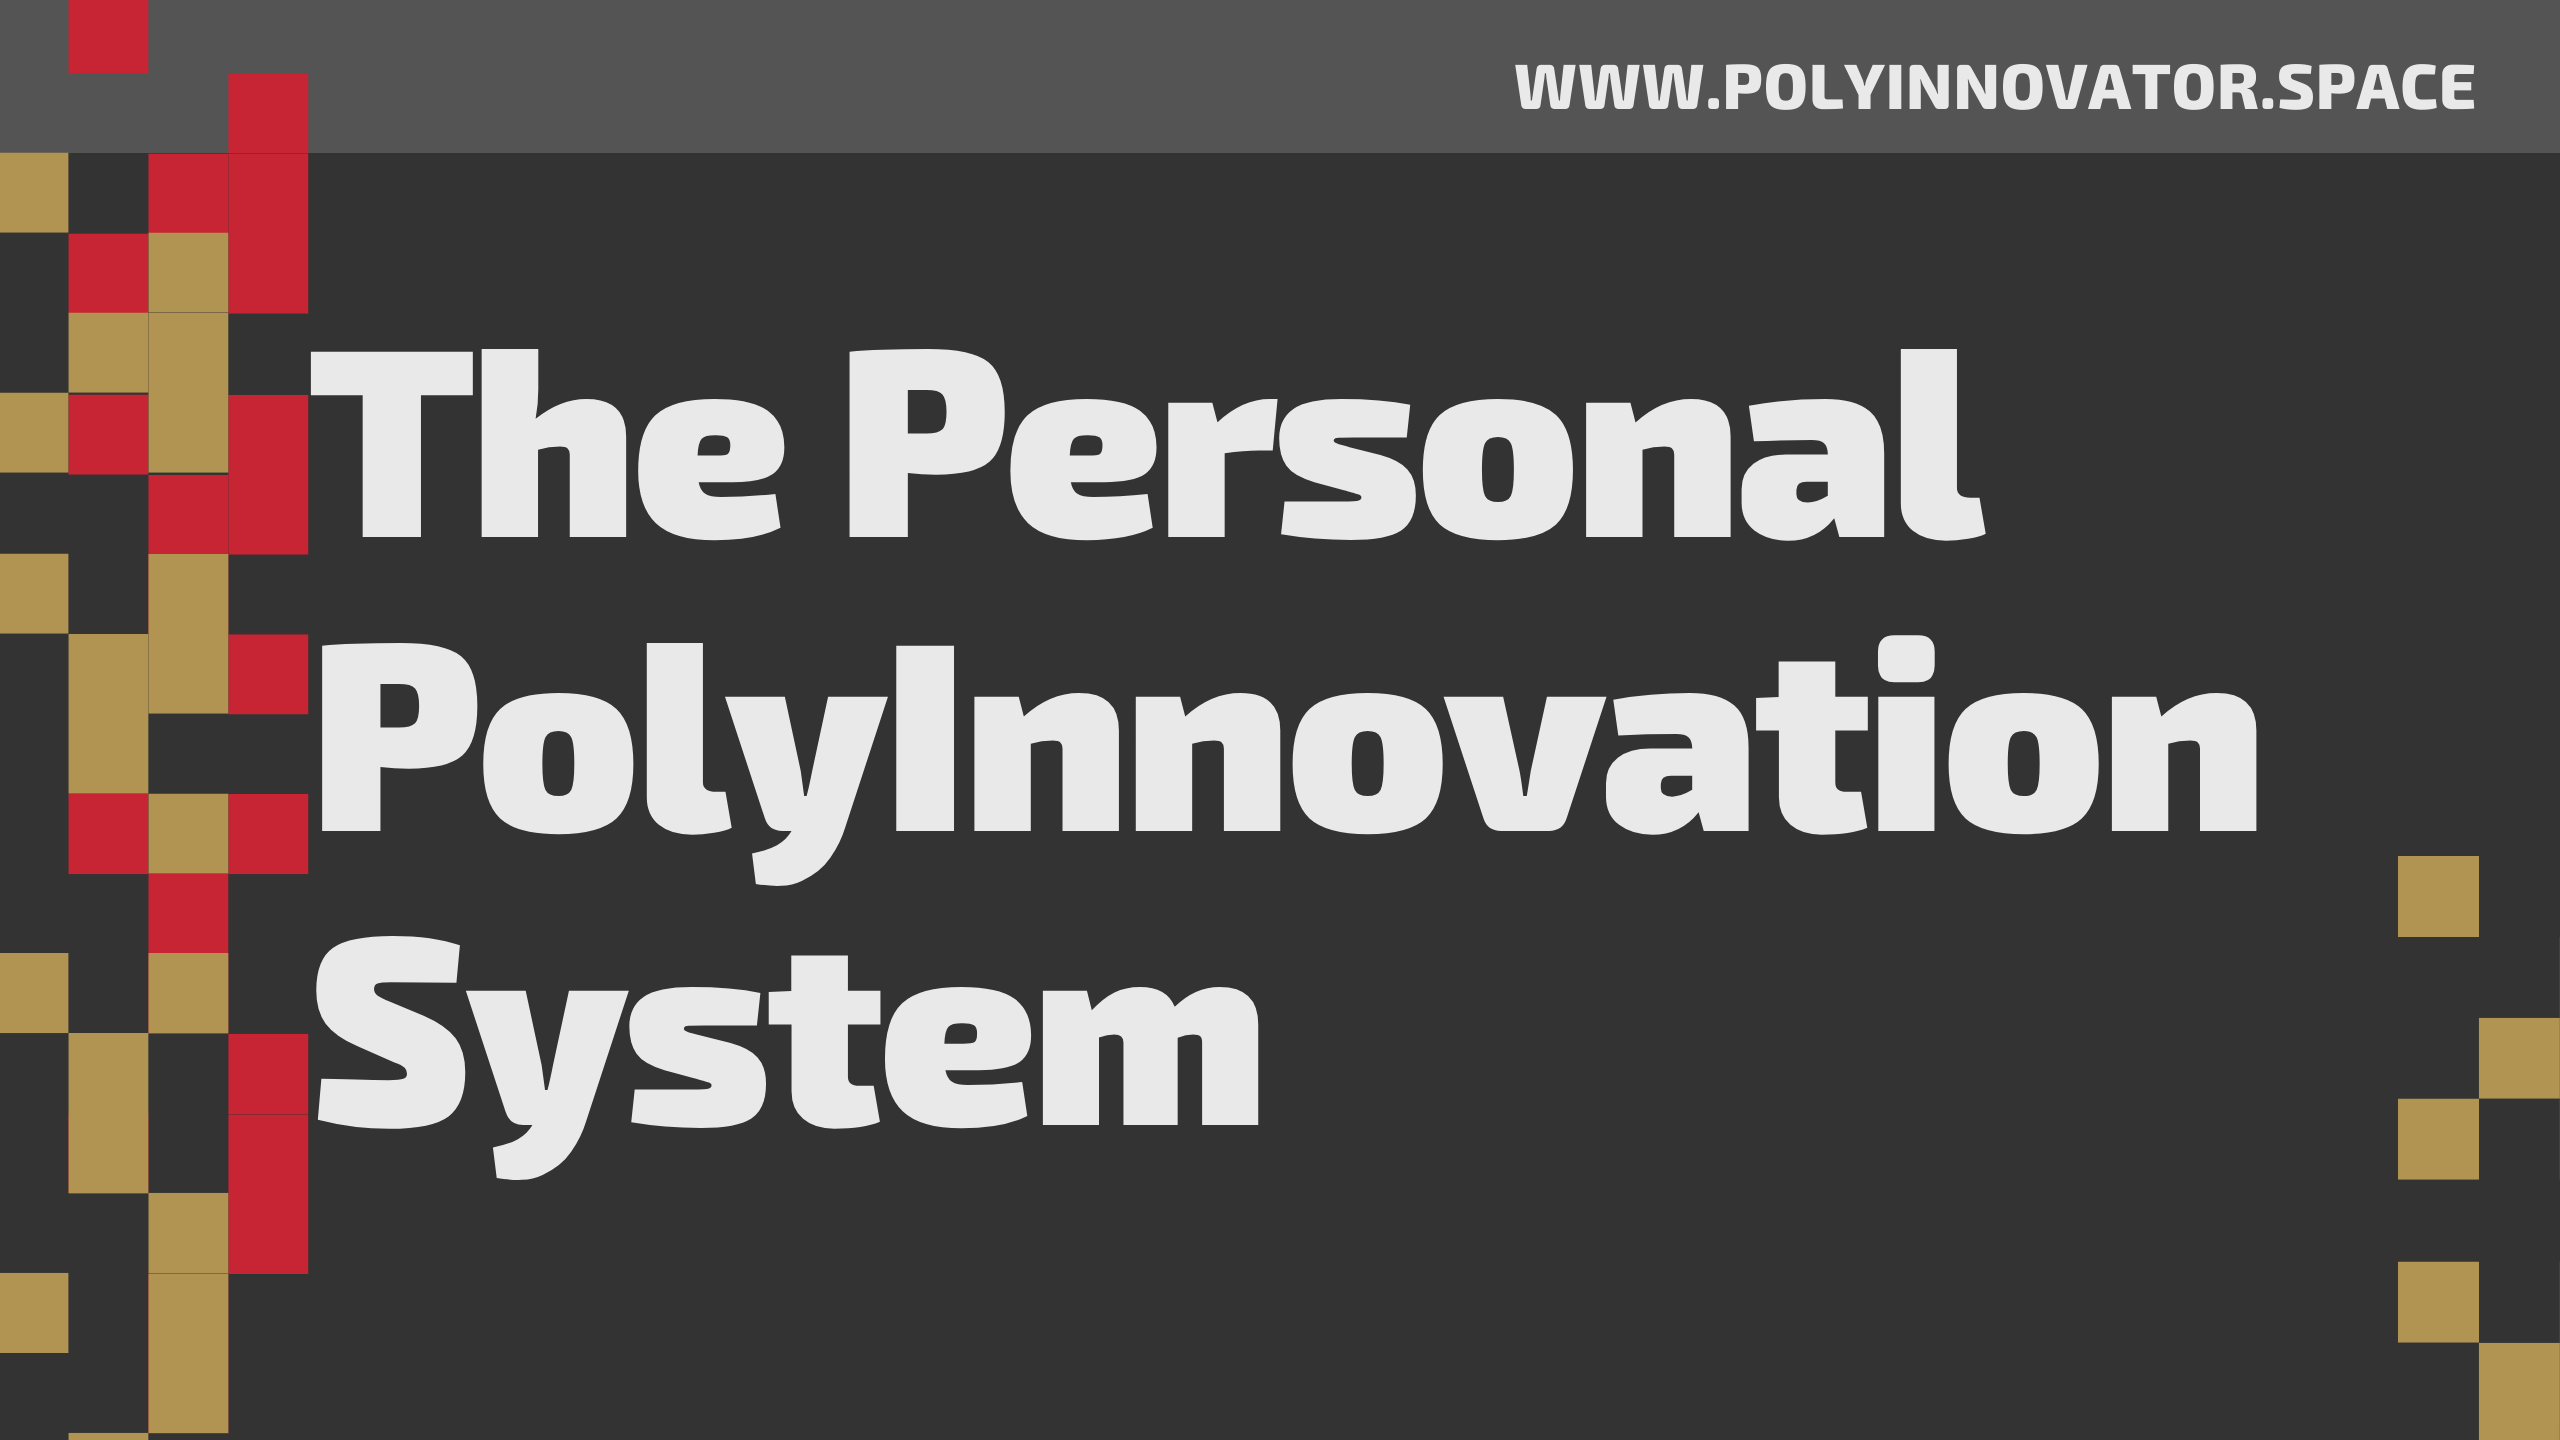 PolyInnovation System